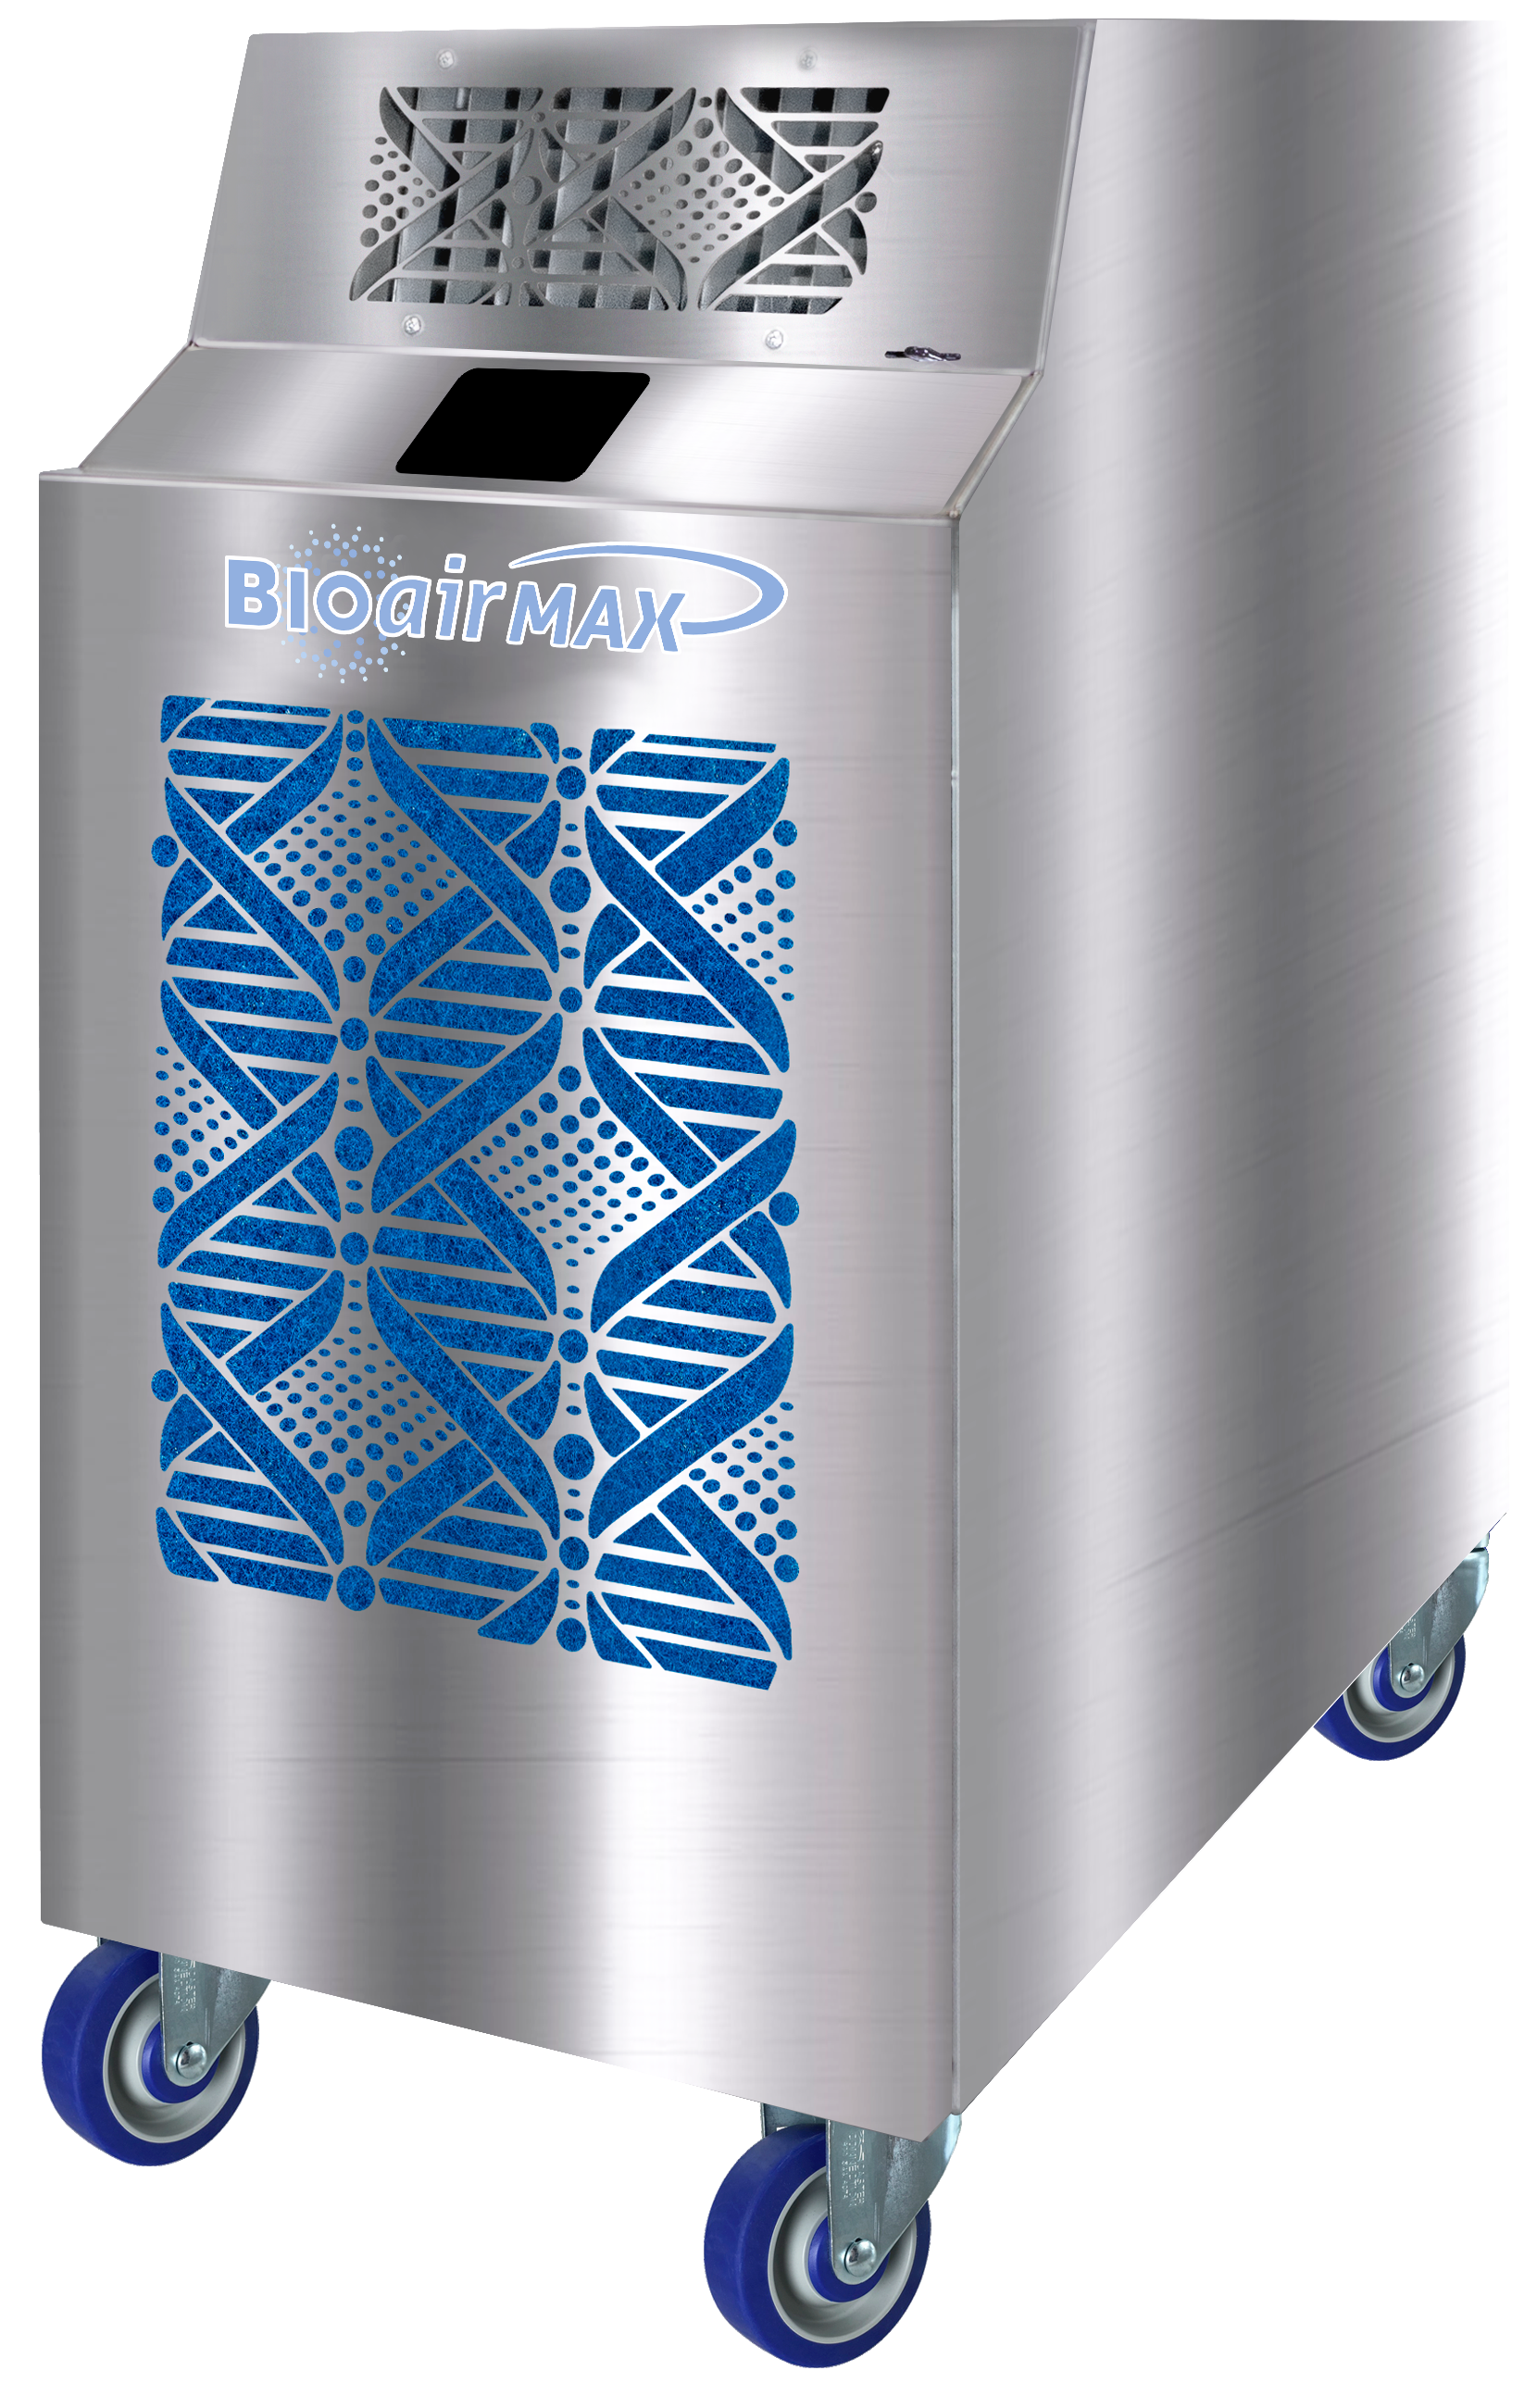 Kwikool KBX1000 BioAir Max Series Combination Air Scrubber / Negative Air Machine with HEPA Filtration, UV Protection and Ionizer